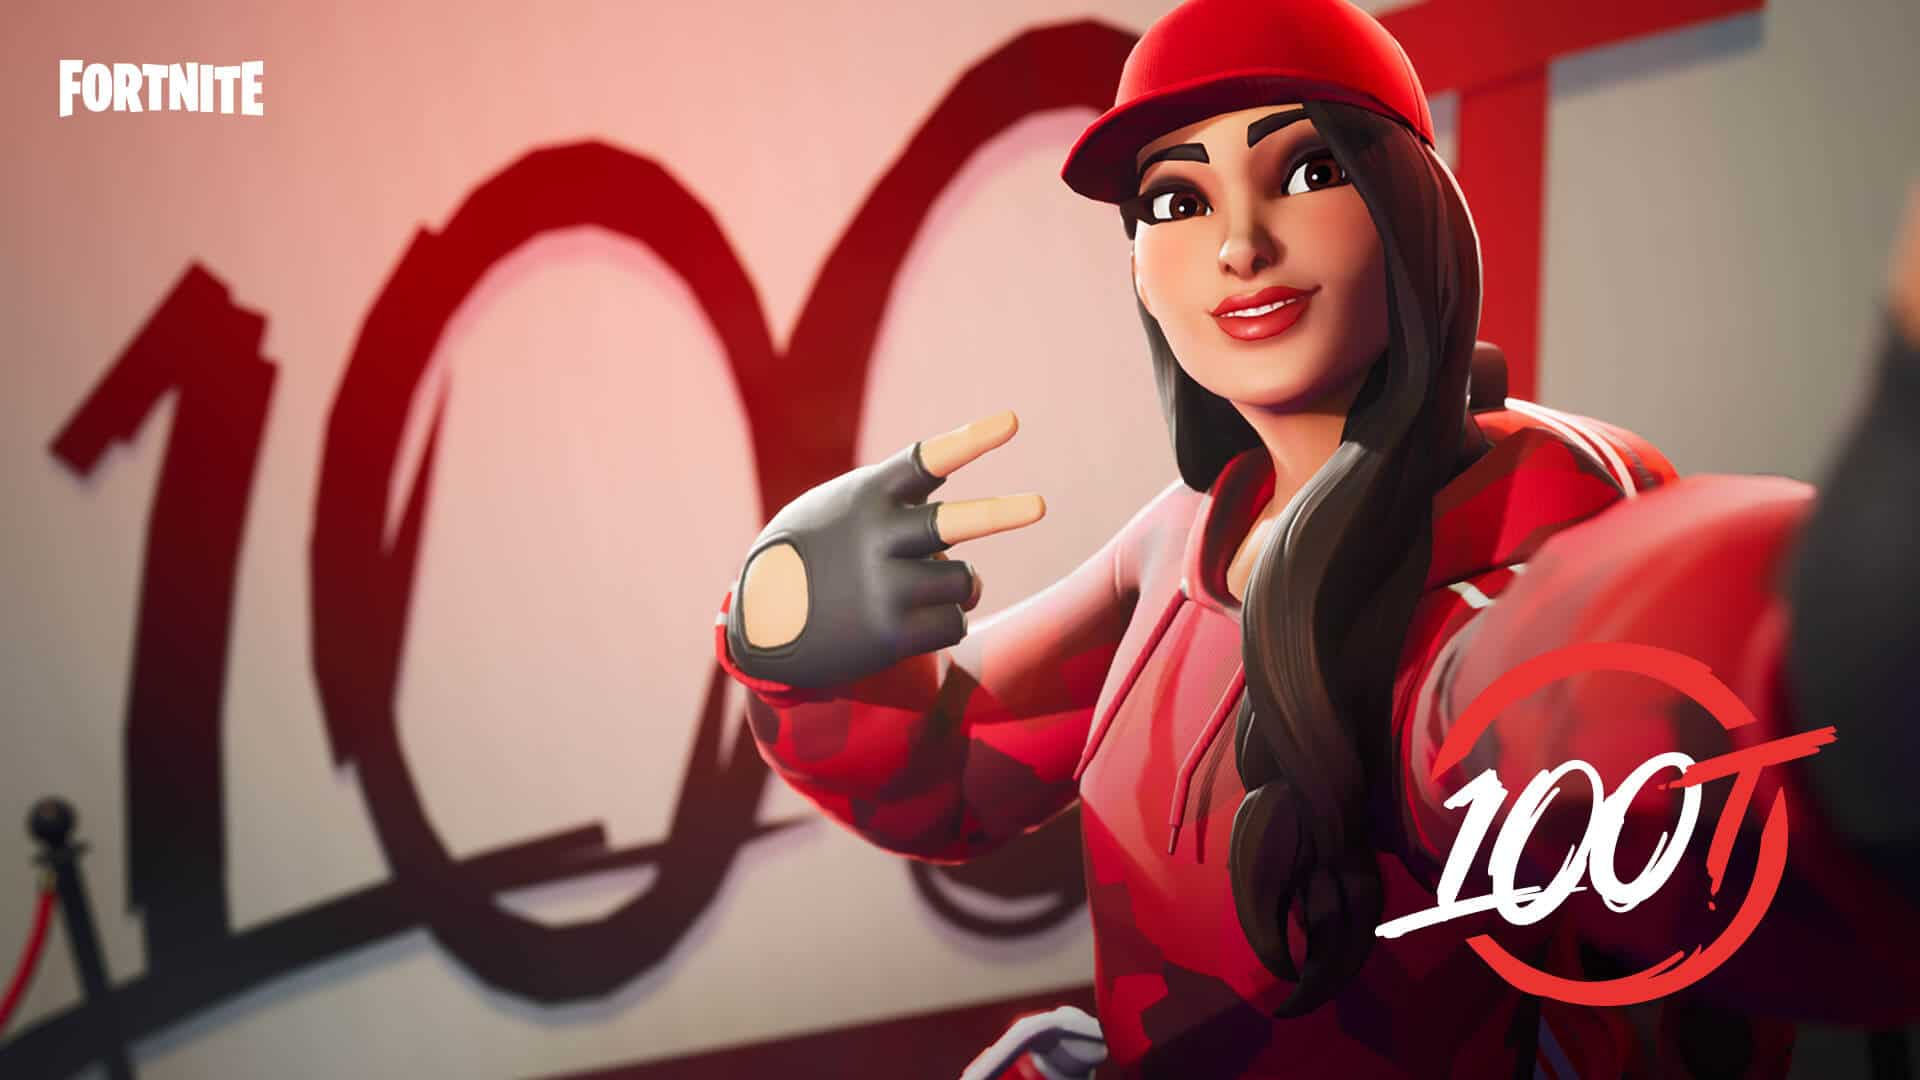 Fortnite 100T contest